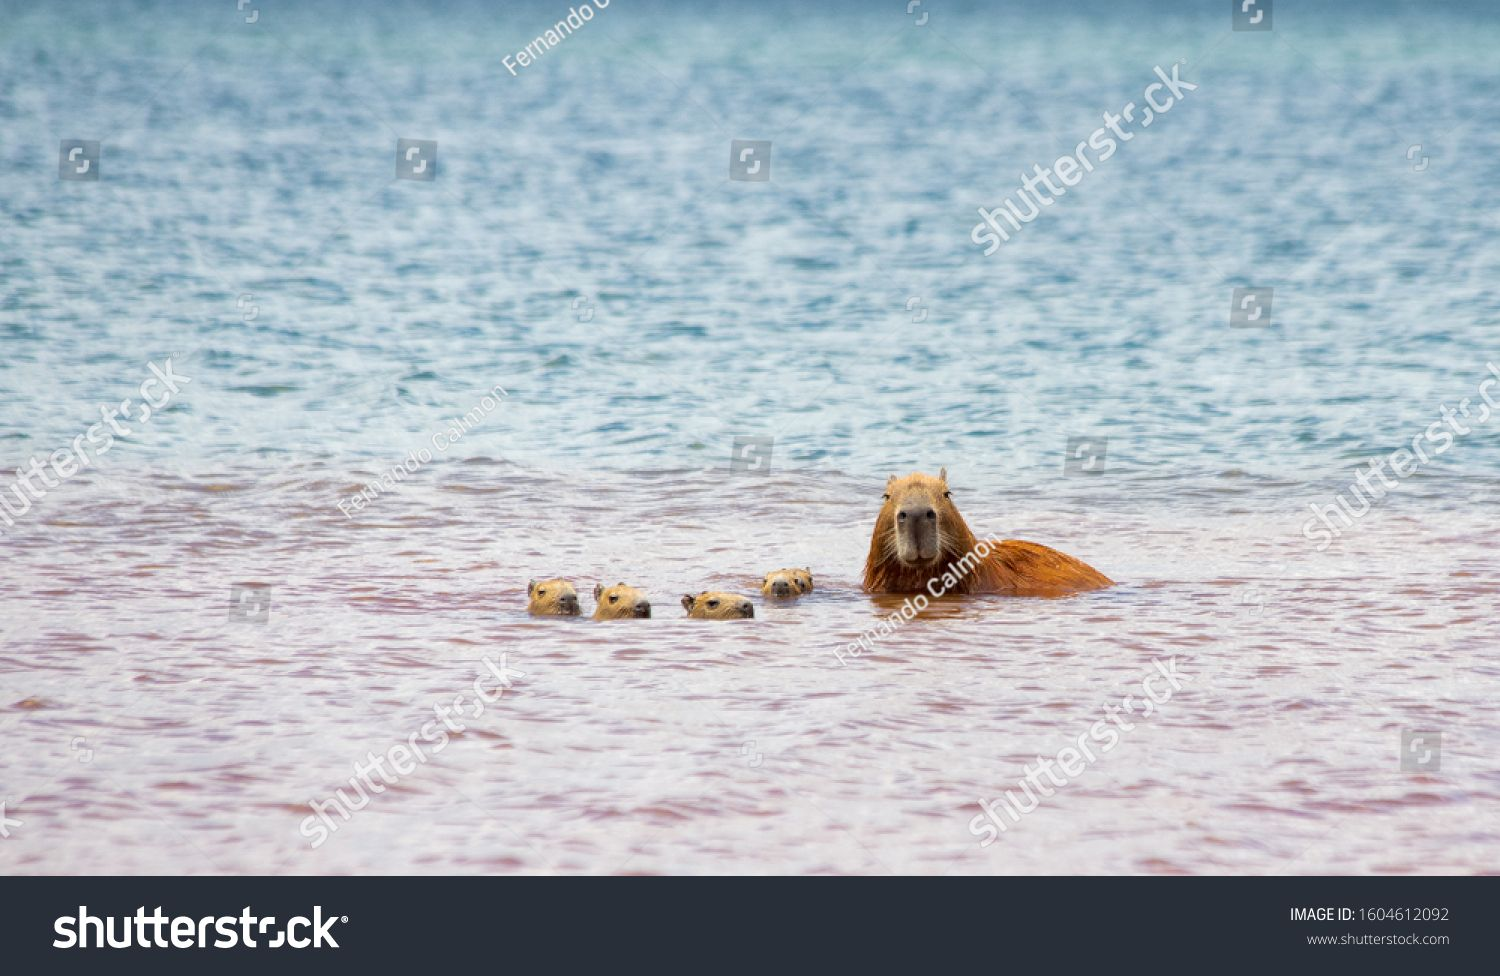 The mother capybara and her five cubs swimming in the waters of Lake Parano¨¢ in Brasilia, Brazil. The capybara is the largest rodent in the world. Species Hydrochoerus hydrochaeris. Wildlife. Cerrado #Ad , #SPONSORED, #Lake#waters#Brasilia#Parano